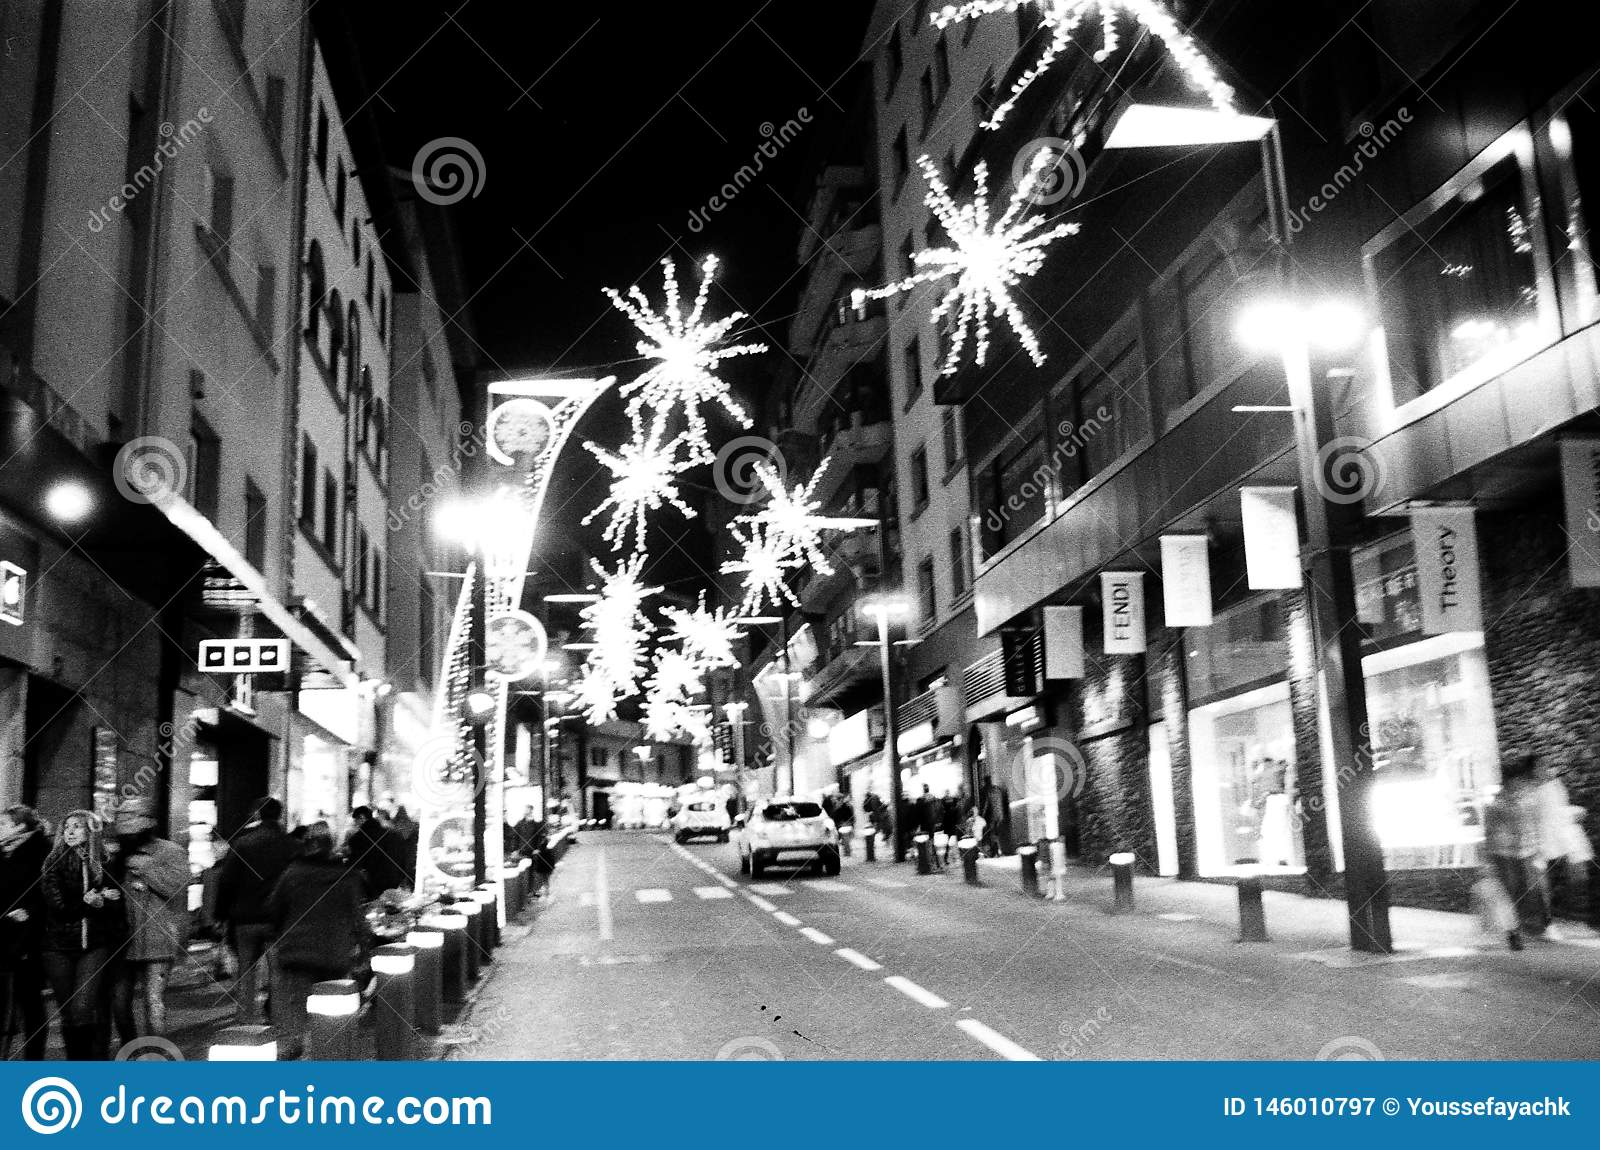 Andorra streets black and white